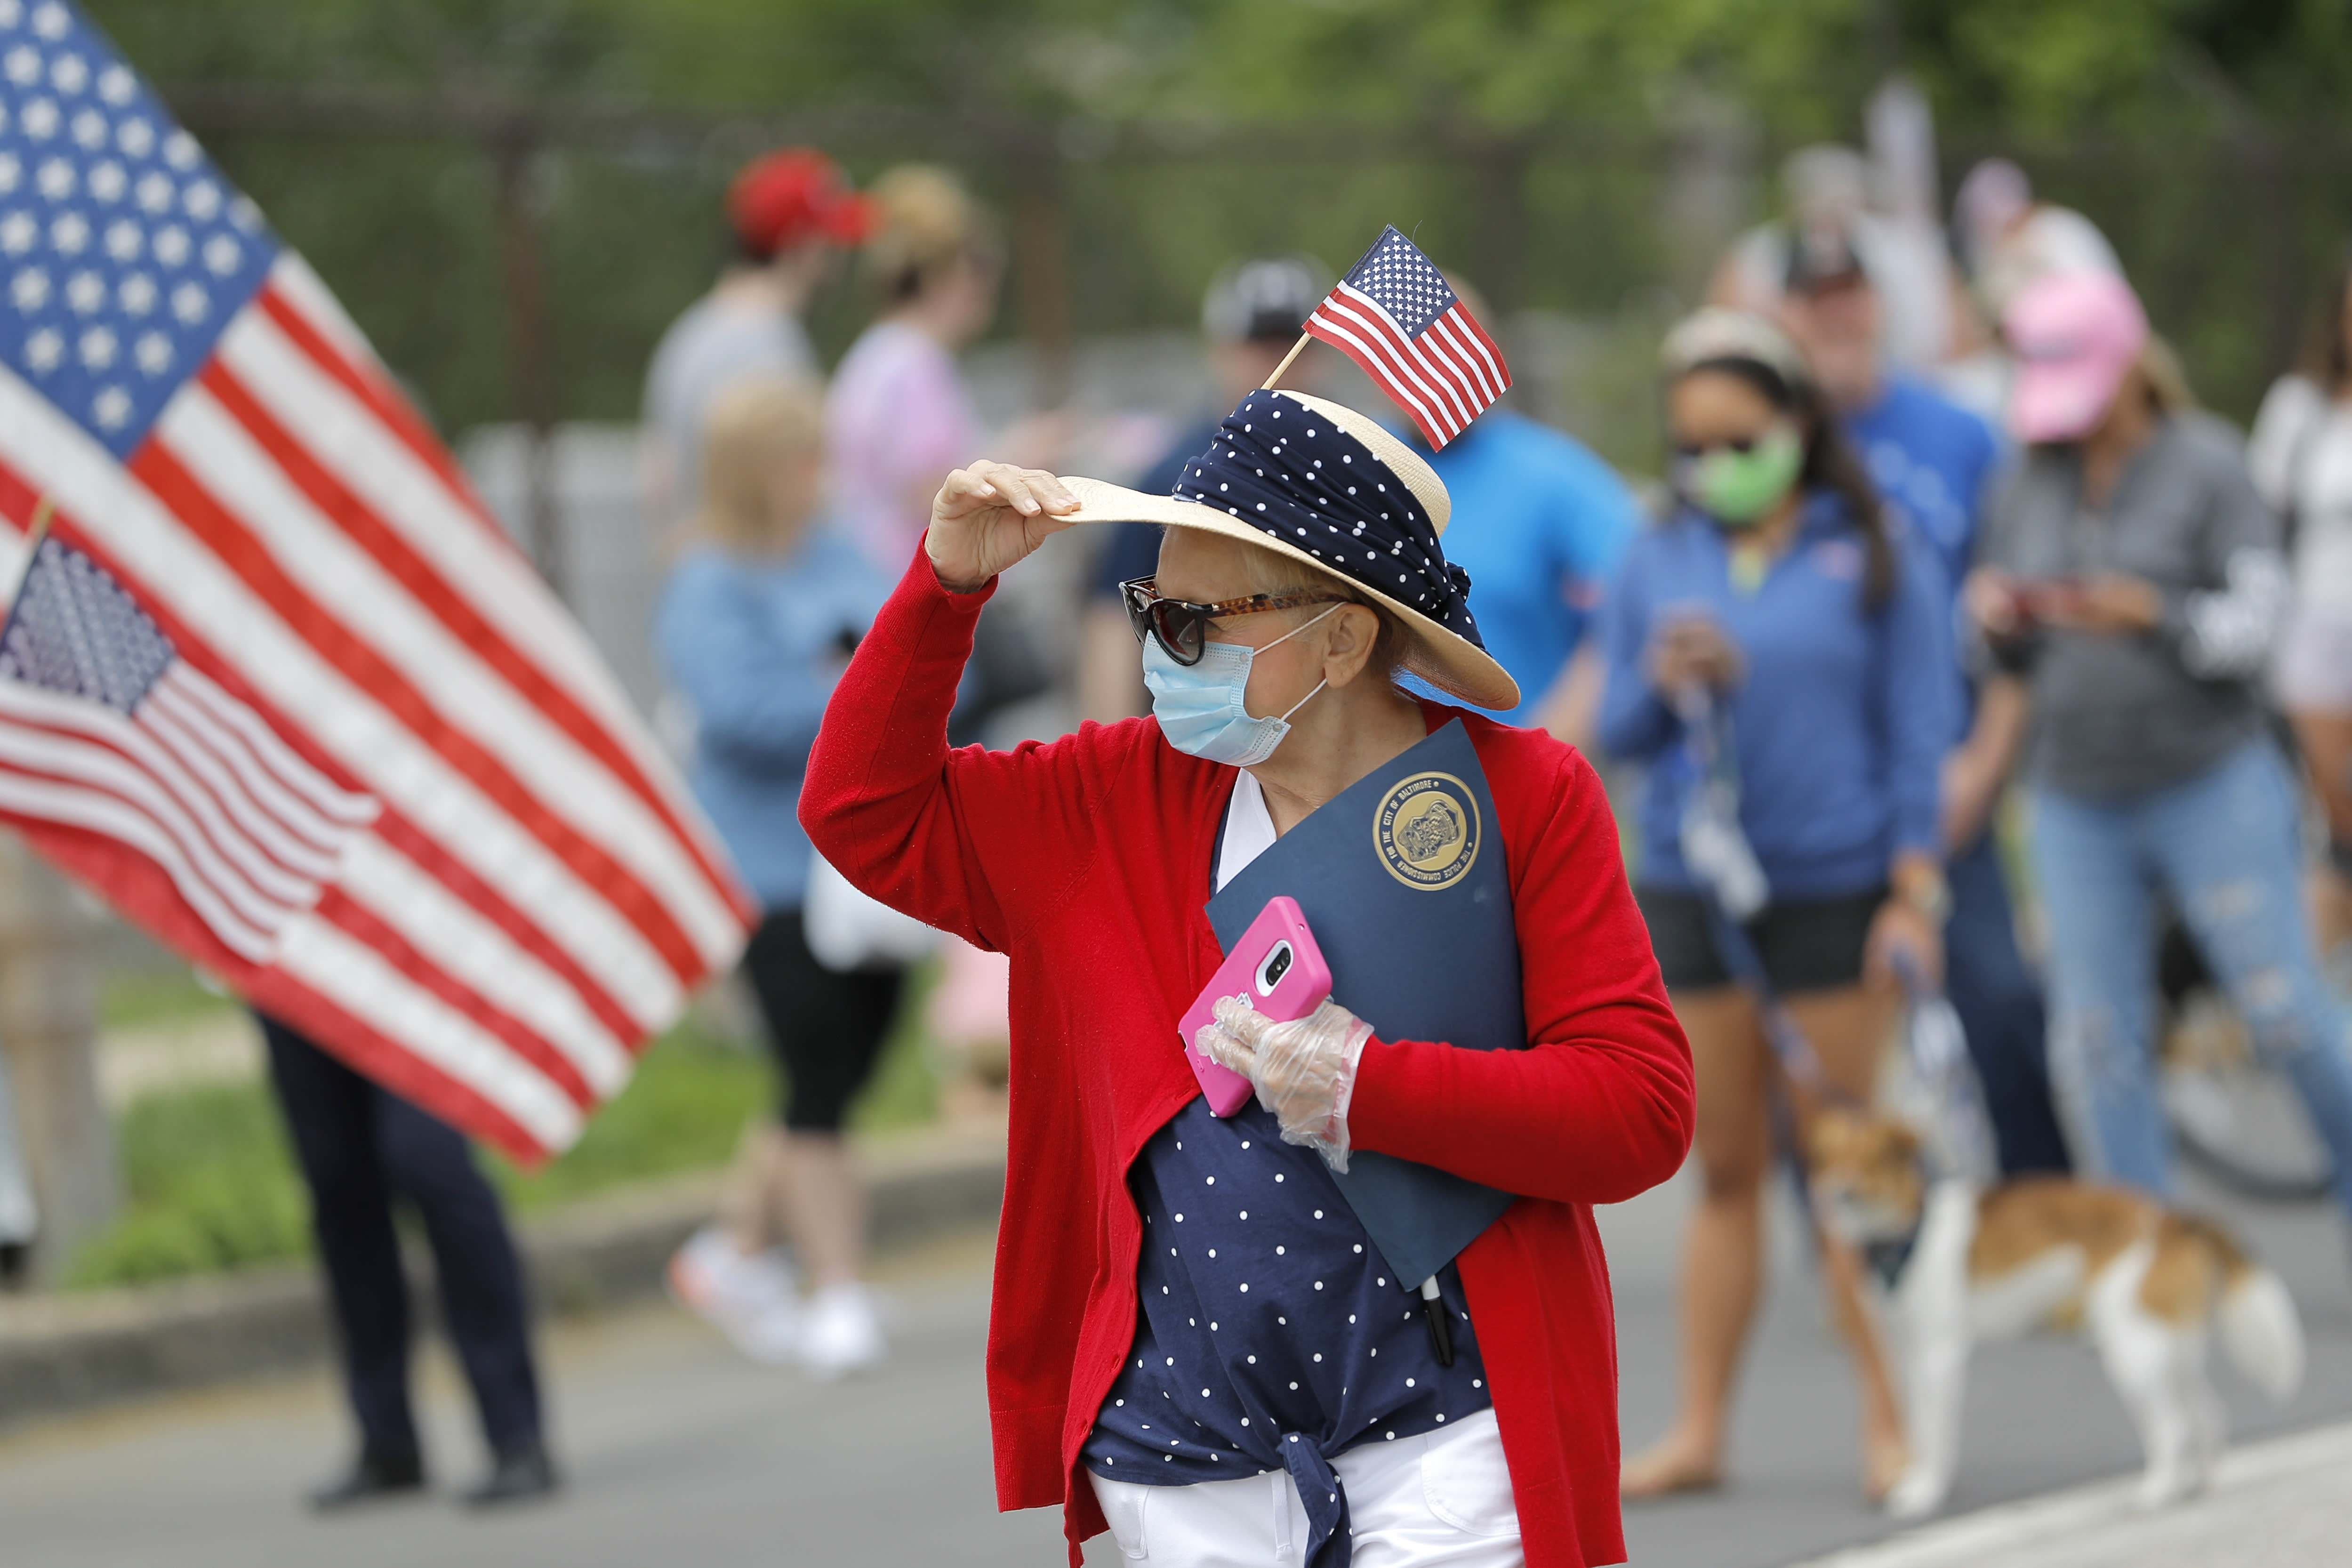 A woman holds on to her hat as she gathers with people outside of Fort McHenry National Monument and Historic Shrine, where President Donald Trump attends a Memorial Day ceremony, Monday, May 25, 2020, in Baltimore. (AP Photo/Julio Cortez)